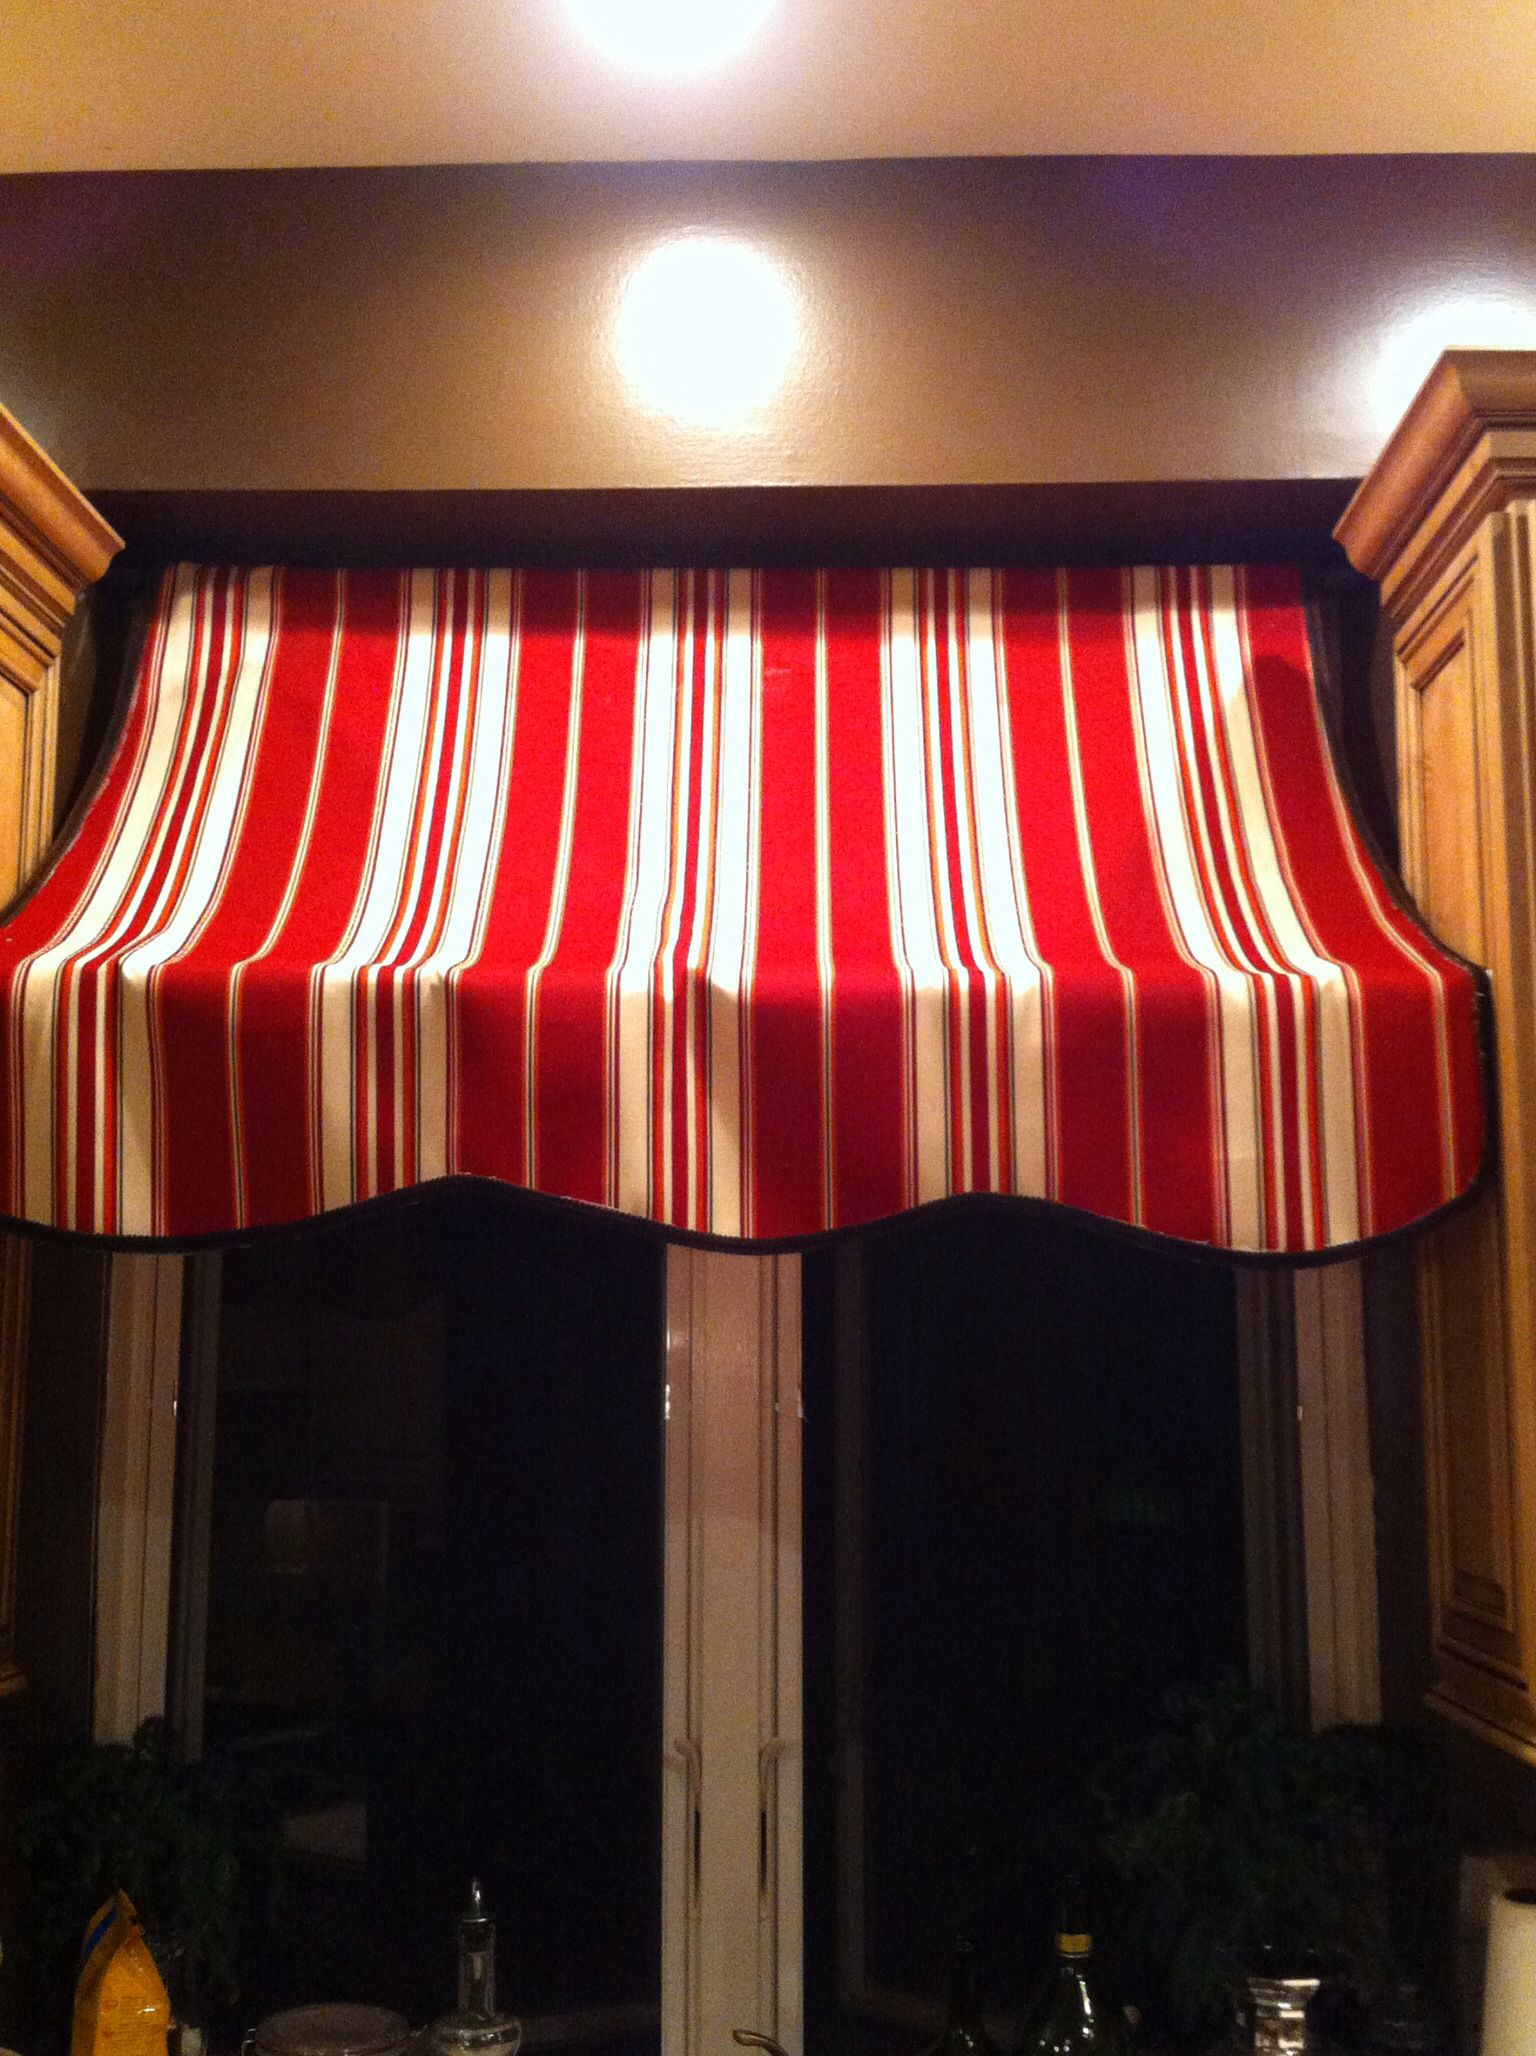 italian bistro kitchen decorating ideas metal cabinets manufacturers my cafe curtain made for 13 from joanne